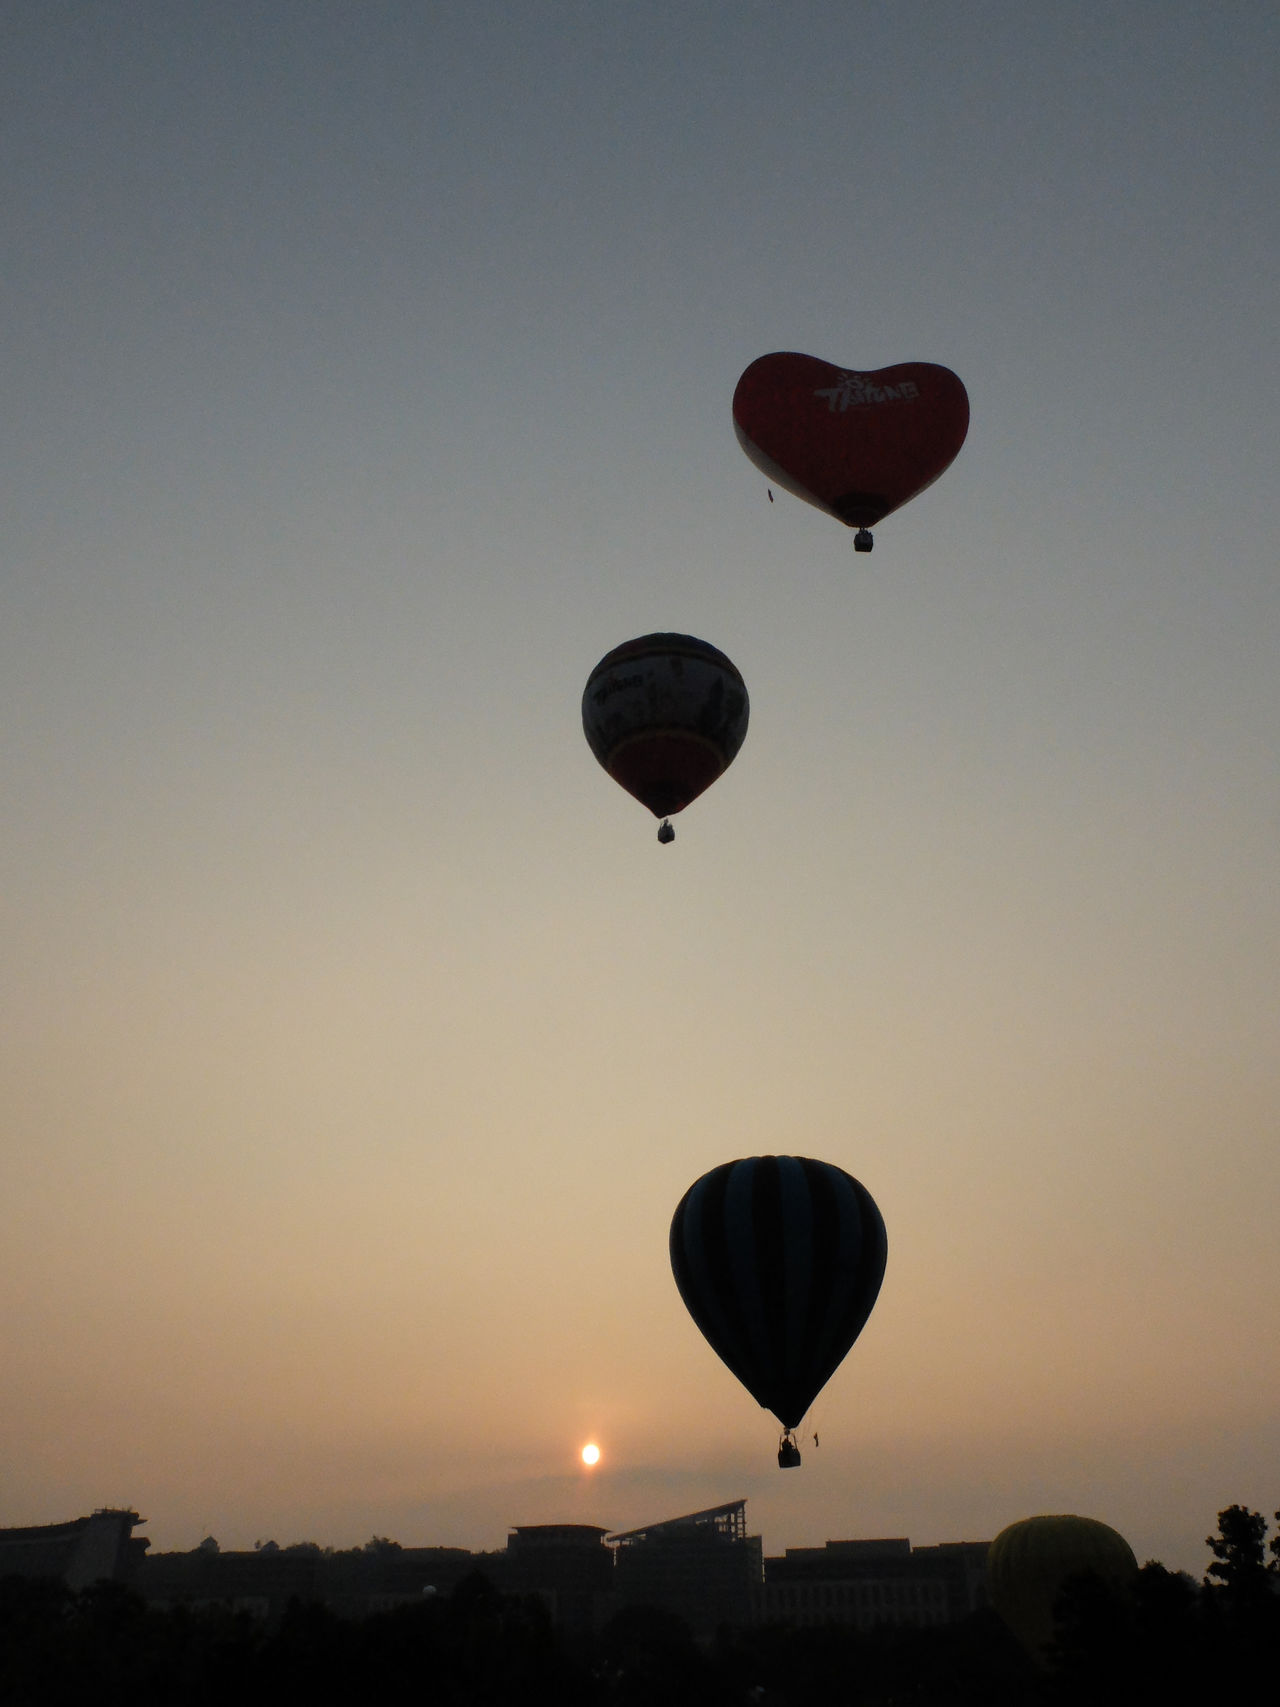 Beautiful stock photos of heart, Clear Sky, Heart Shape, Hot Air Balloon, Low Angle View